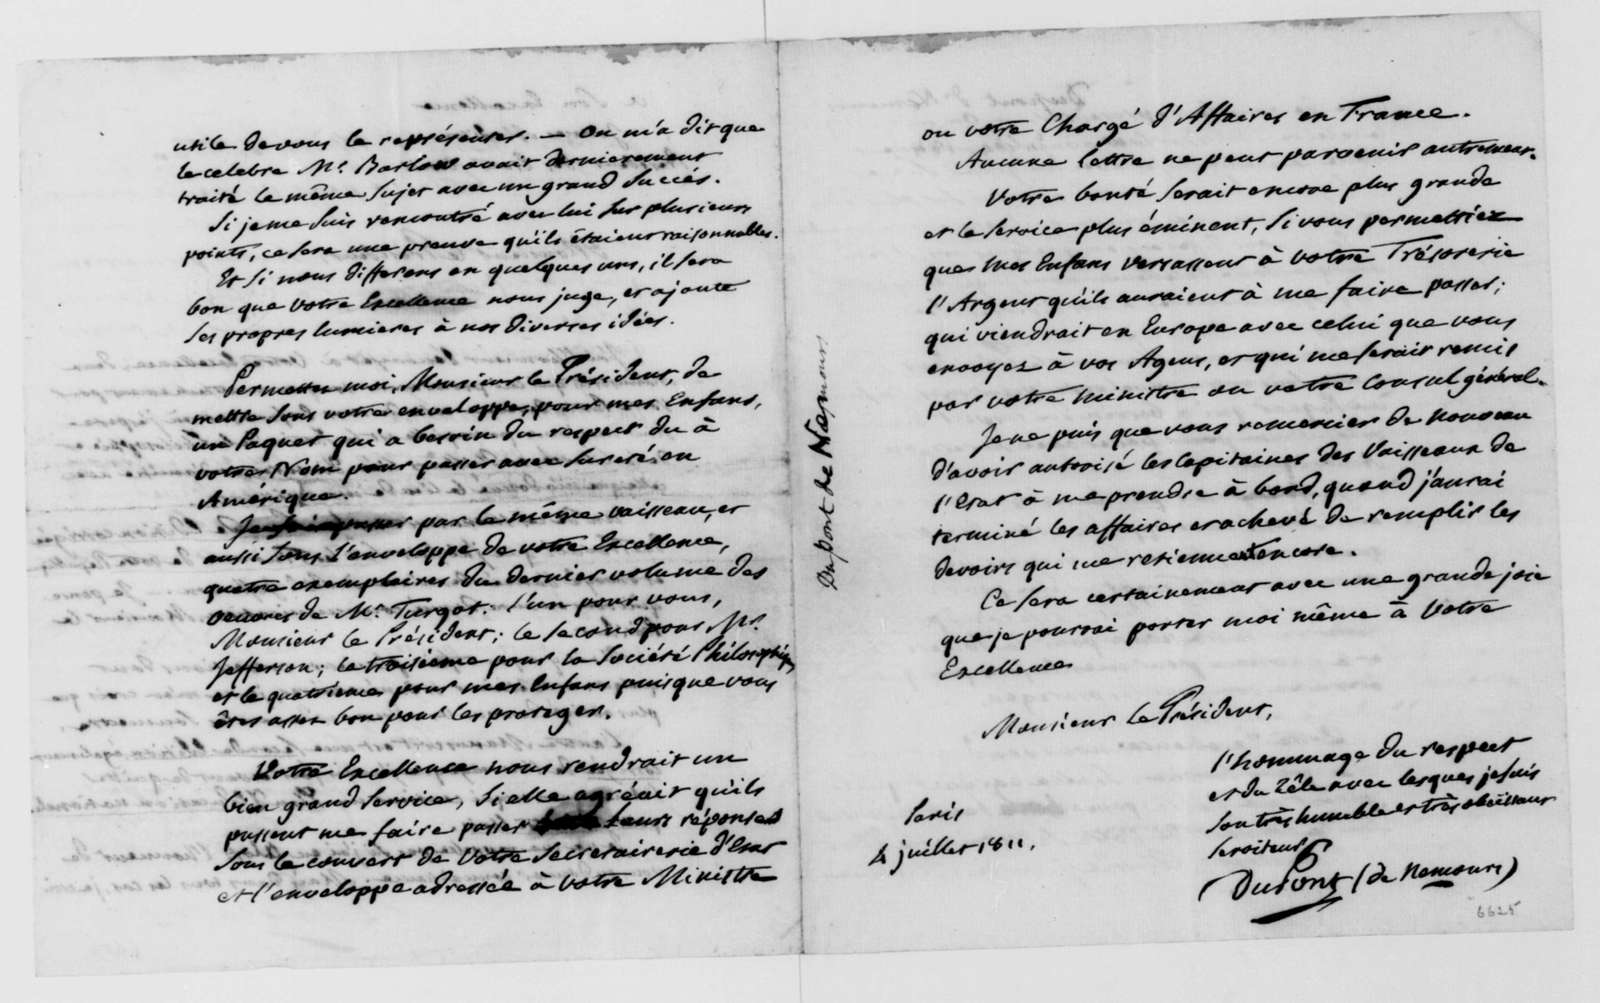 Dupont de Nemours to James Madison, July 4, 1811. In French.